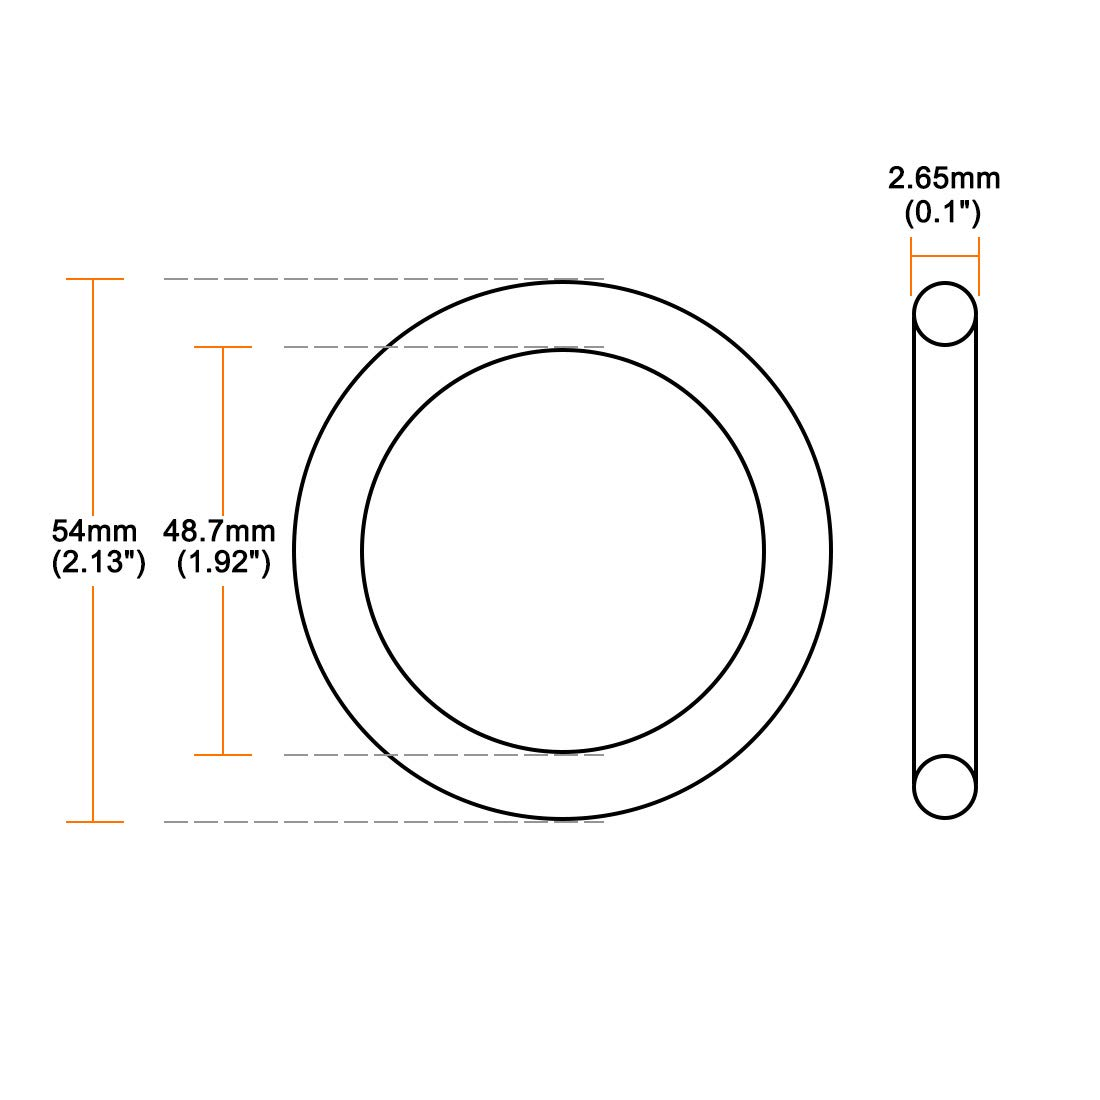 uxcell O-Rings Nitrile Rubber 30mm Inner Diameter 33.6mm OD 1.8mm Width Round Seal Gasket 10Pcs